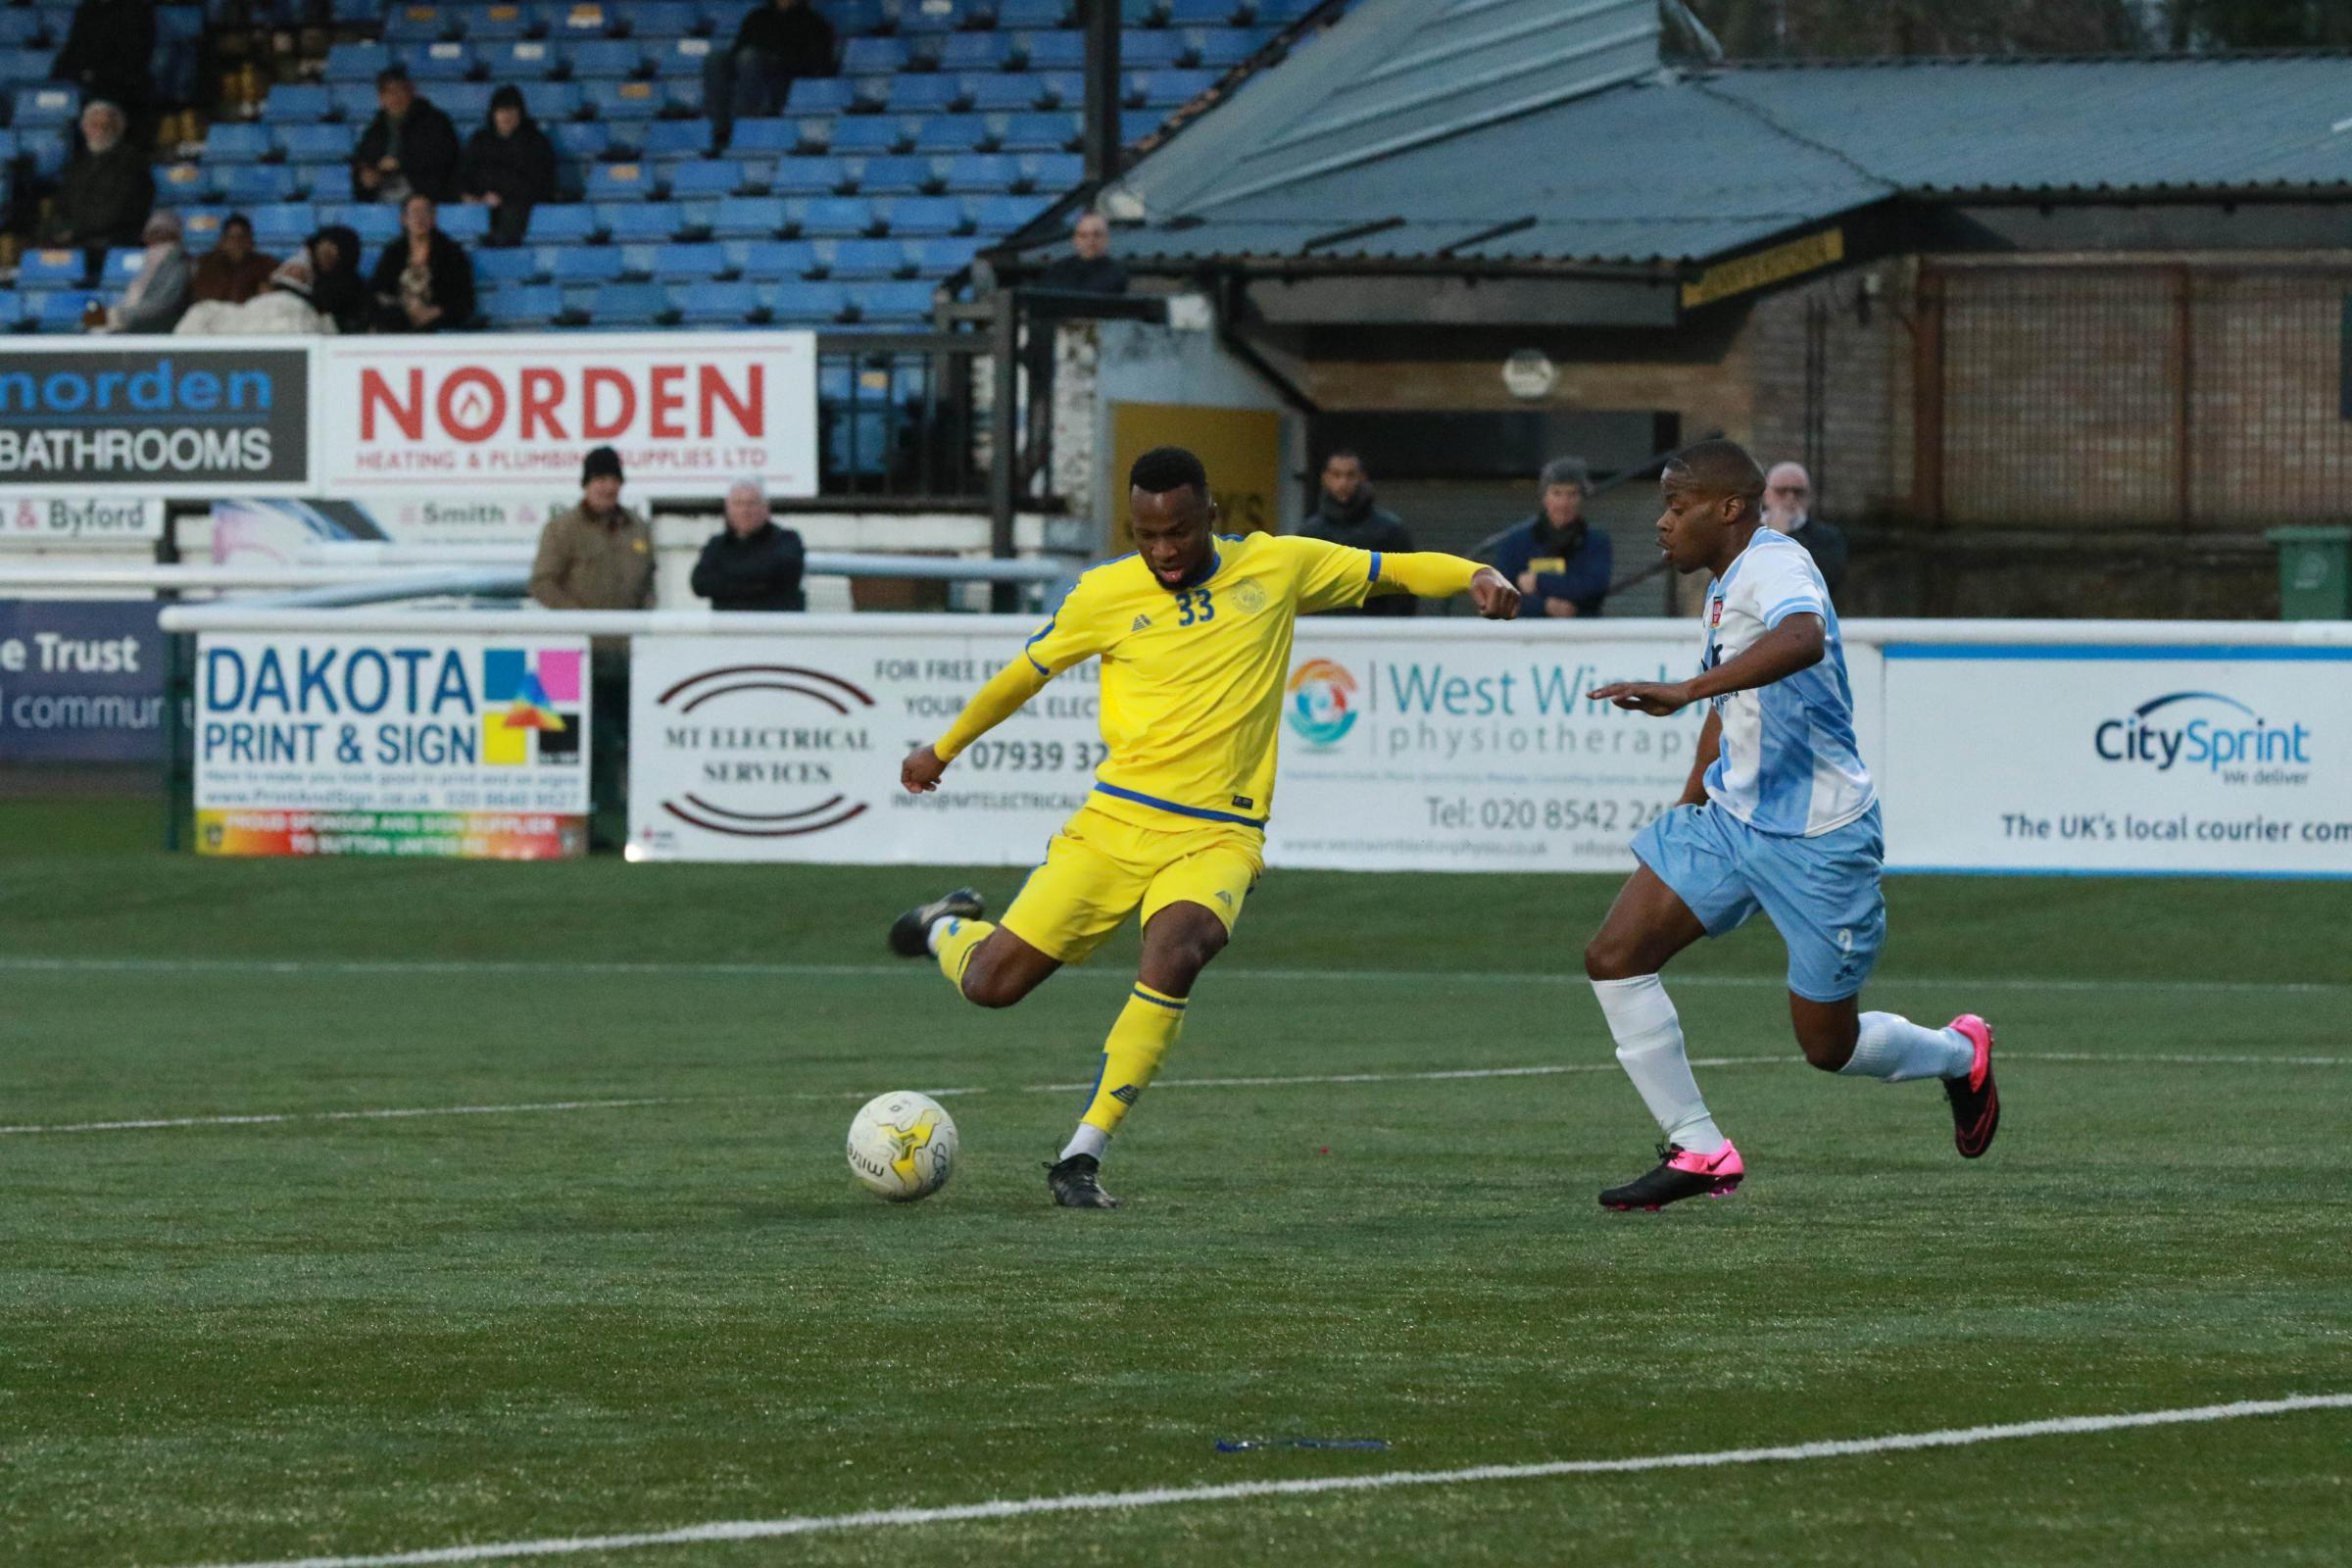 Malachi Thomas scores his first goal for Sutton Common Rovers against Hanworth Villa on Saturday